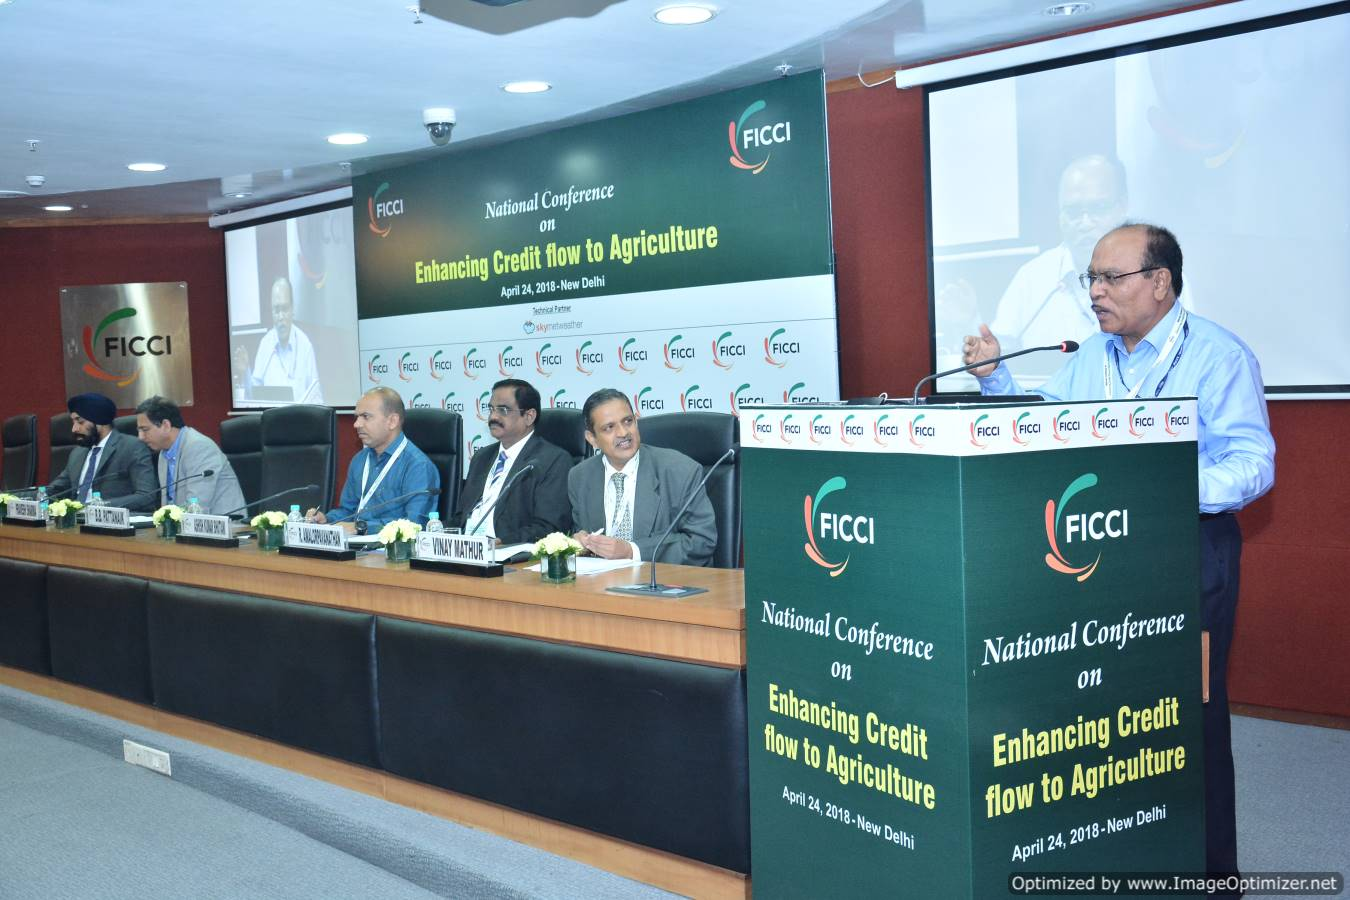 National Conference Enhancing Credit flow to Agriculture